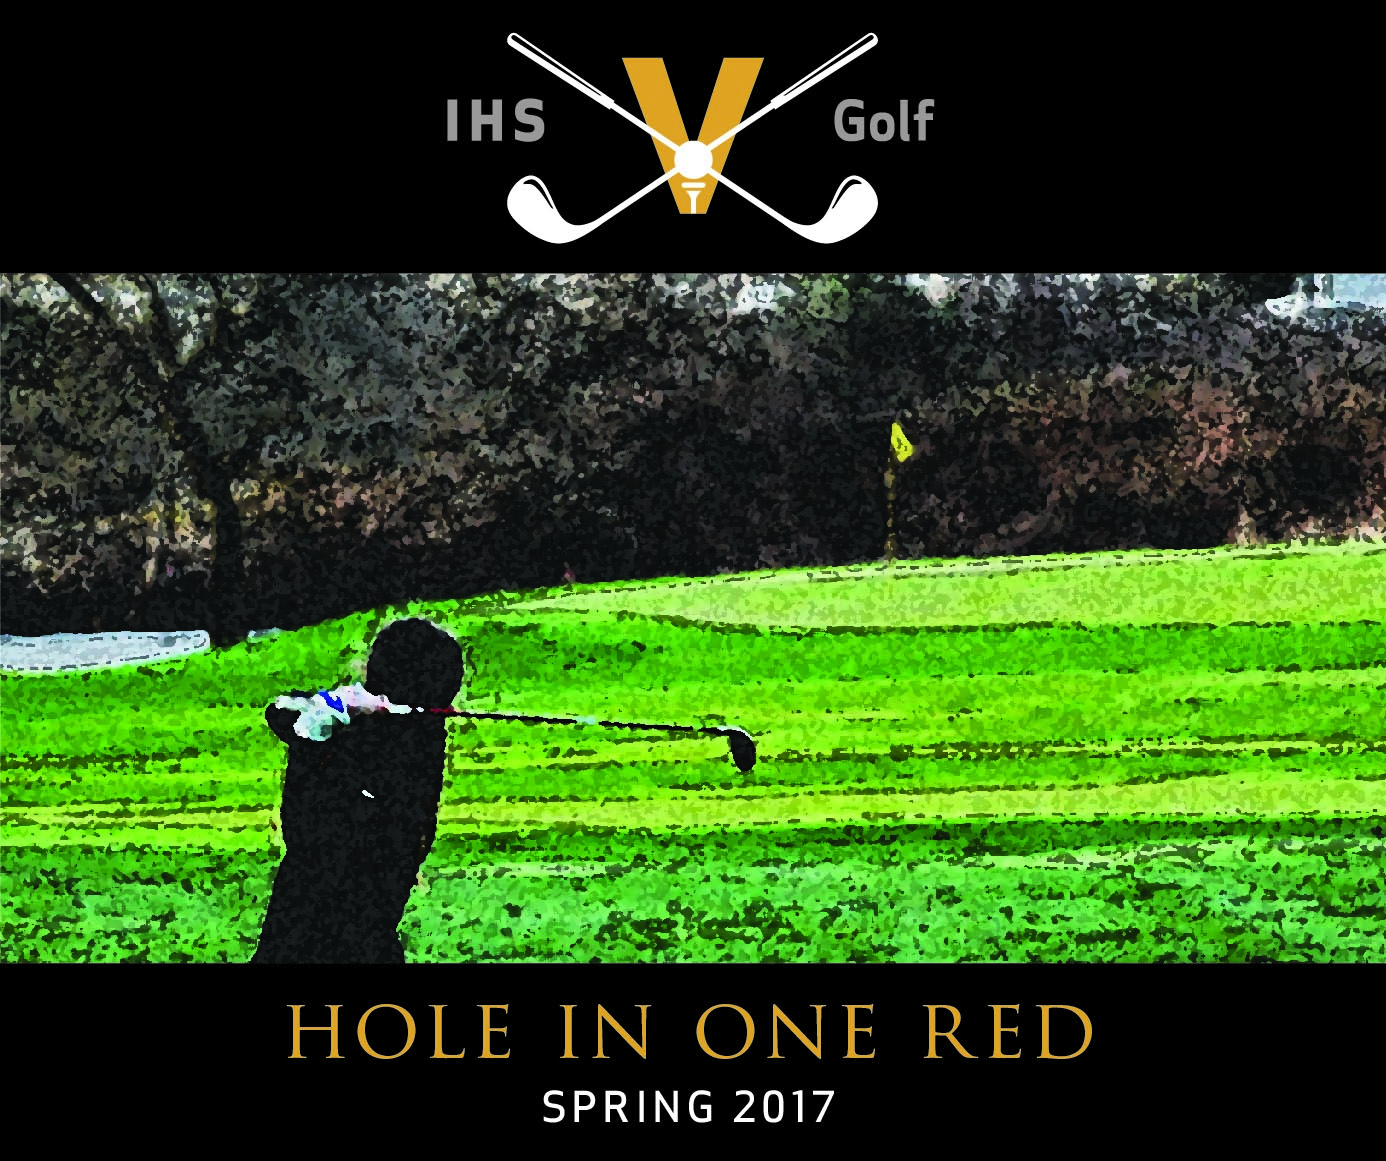 IHS Golf red h final small